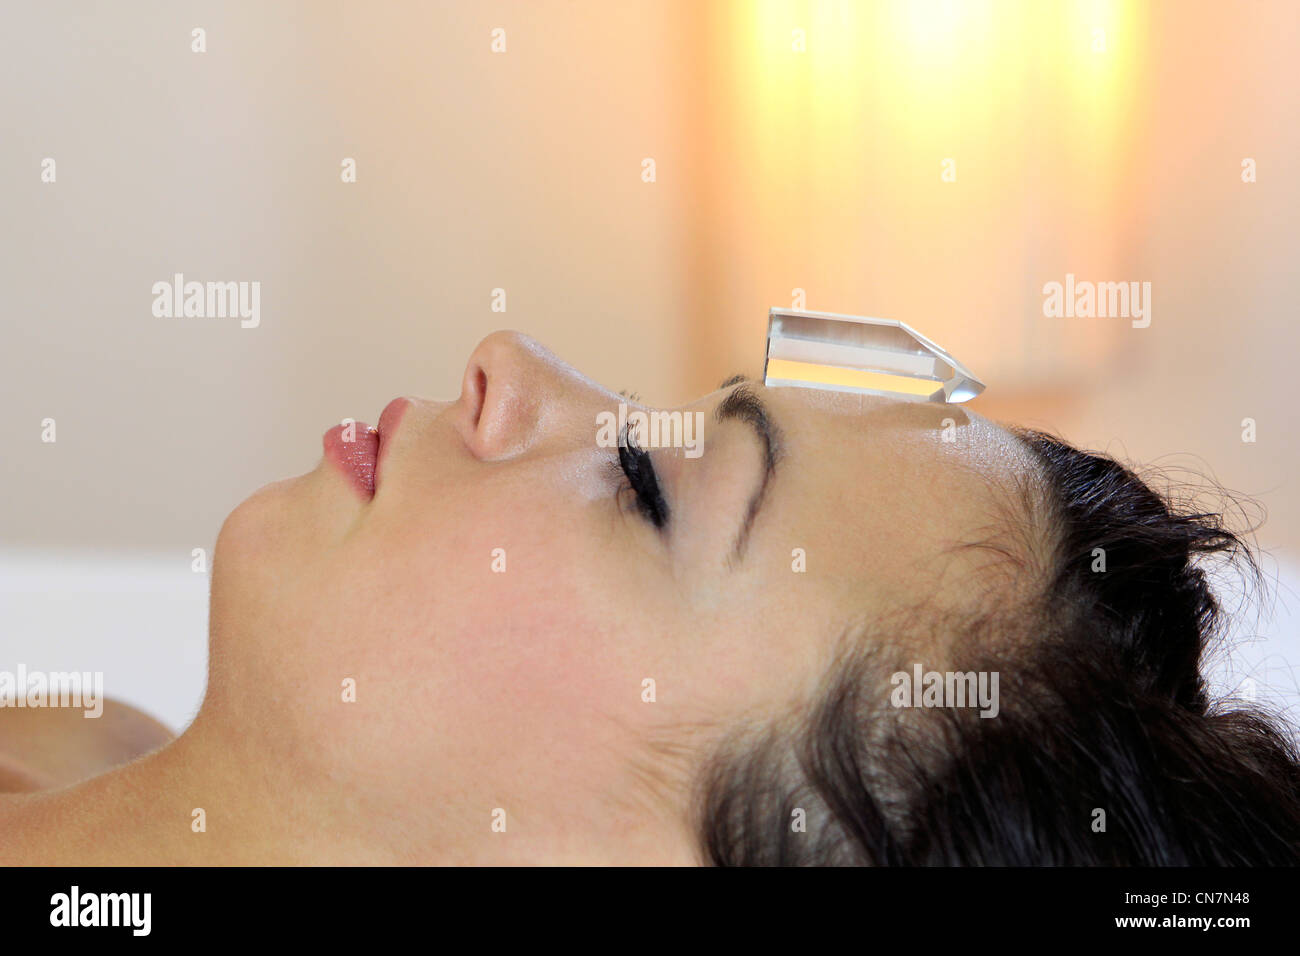 Woman makes a gemstone therapy, alternative healing method - Stock Image